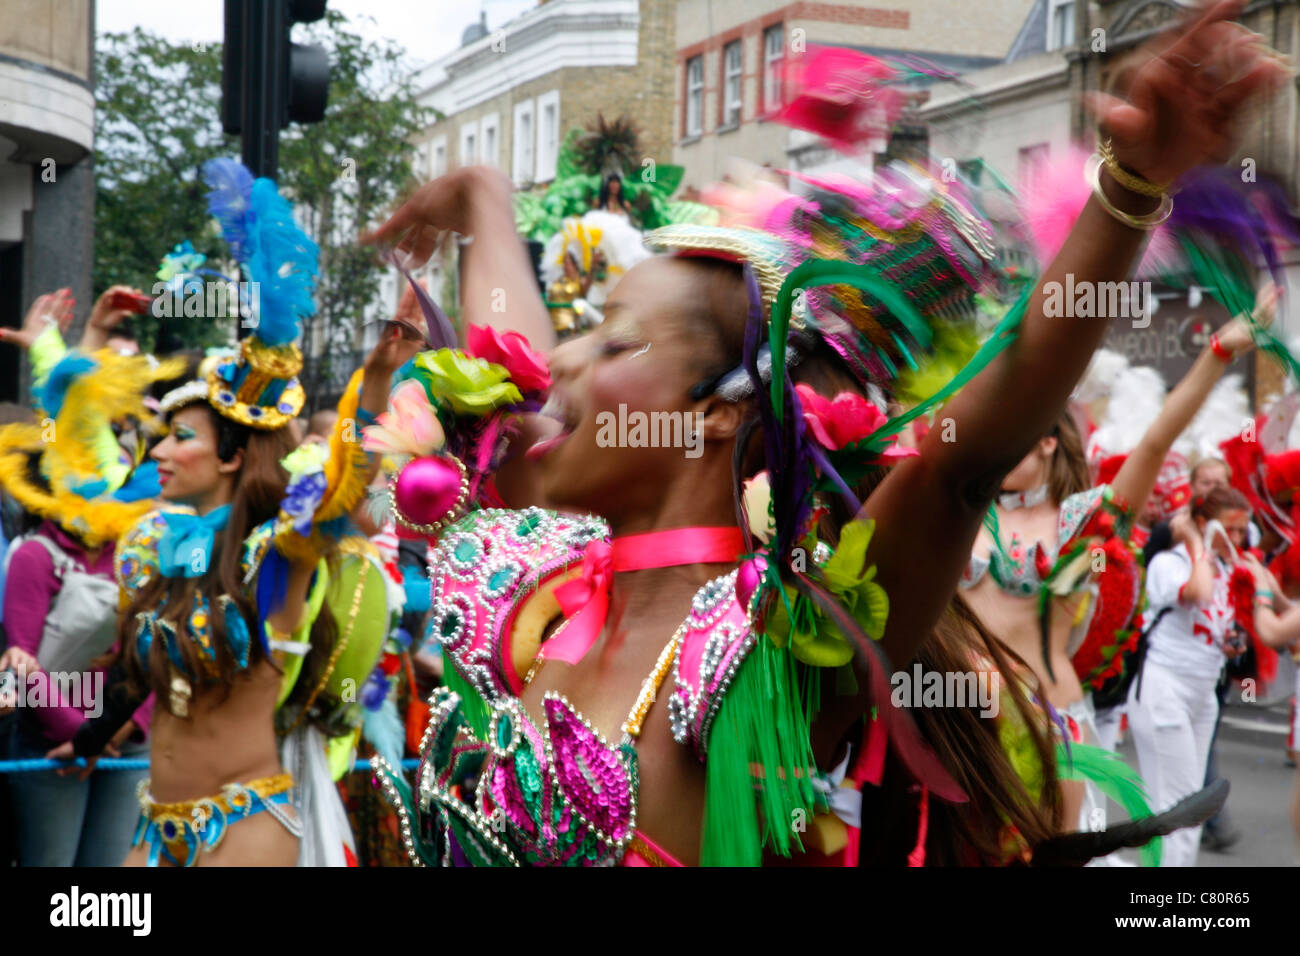 Costume (or Mas) parade at Notting Hill Carnival, Notting Hill, London, UK - Stock Image